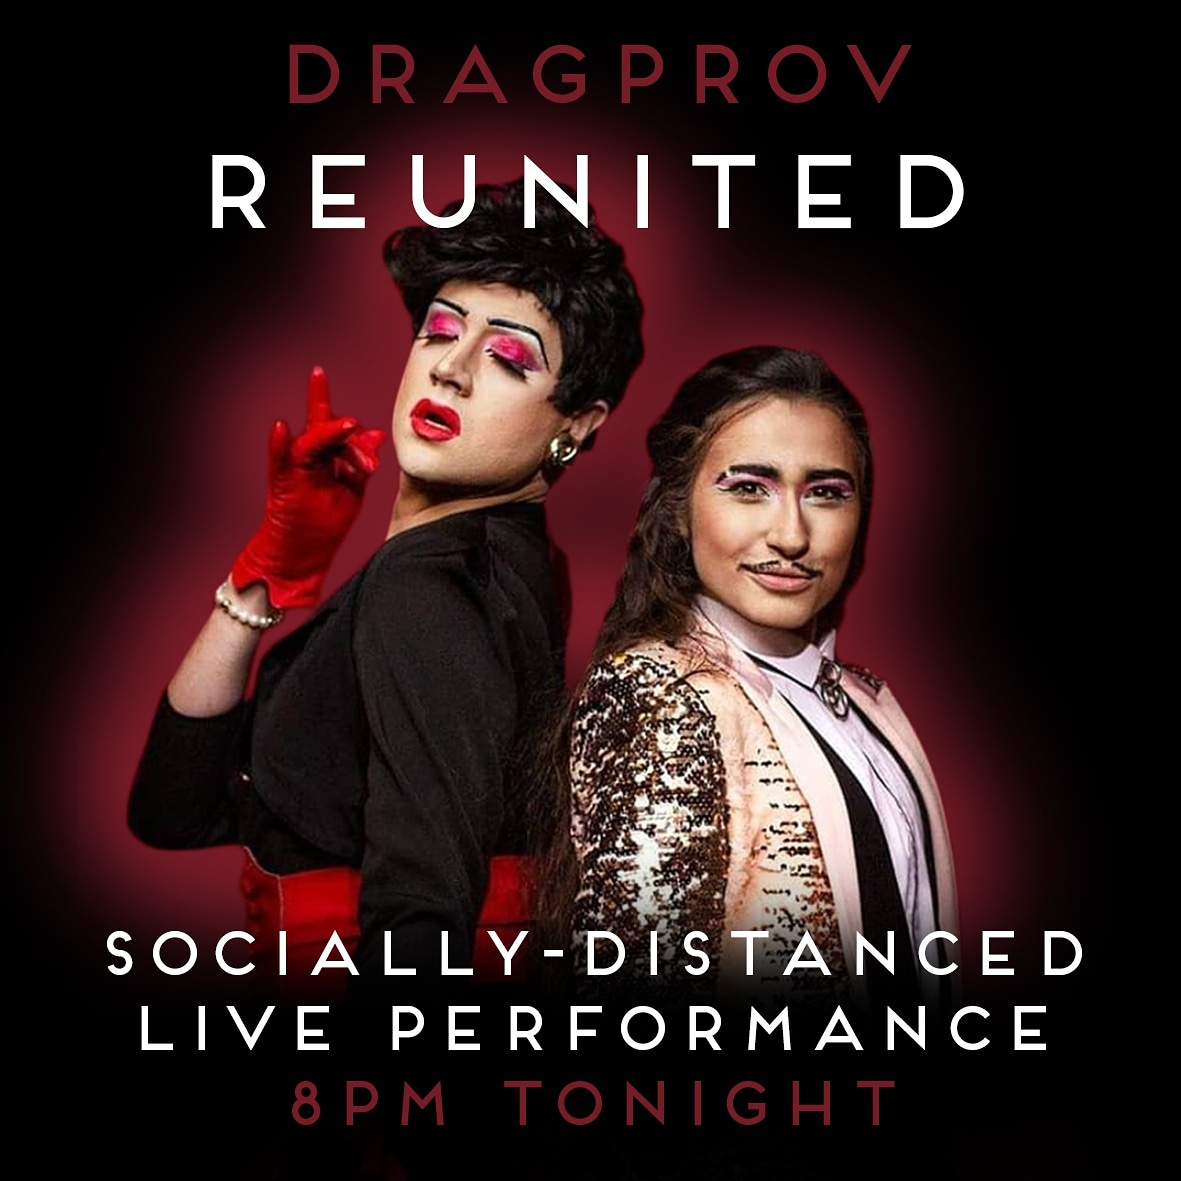 DRAGPROV ARE DRAGPROV-ING TOGETHER TONIGHT @8PM for the first time in months. Join us on Insta Live for the most JOYOUS reunion ever. And don't worry folkx, we've shielded, socially distanced, & taken ALL the measures to make sure we won't give each other cooties #PRIDE2020<br>http://pic.twitter.com/r9KsOC6JEH